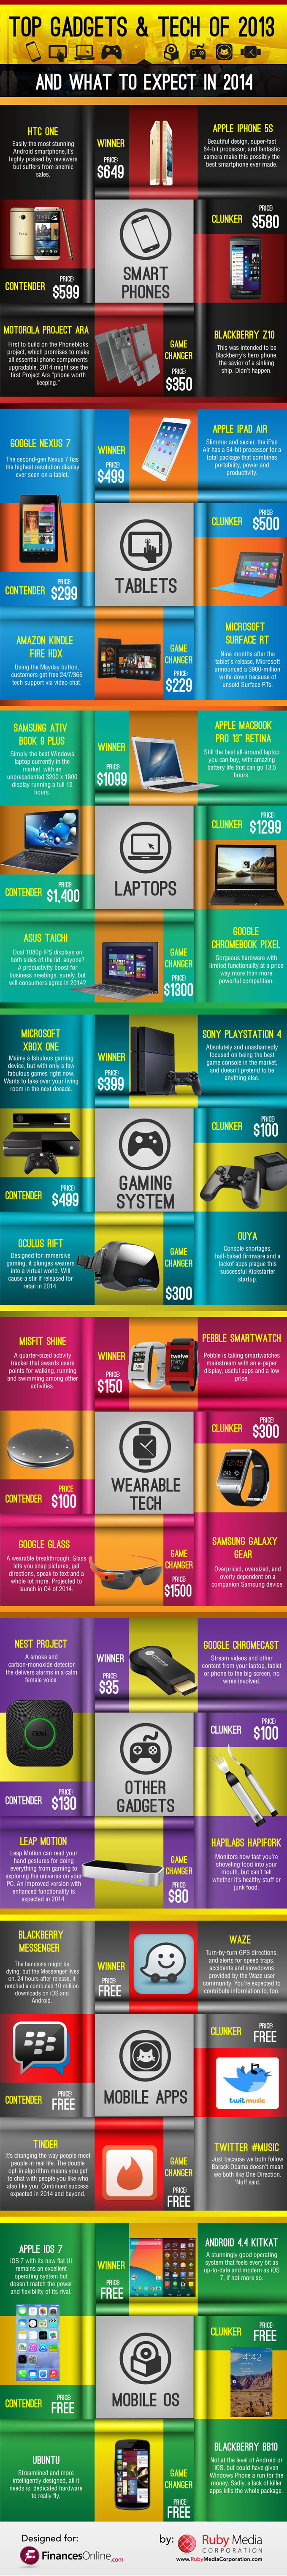 top gadgets 2013 infographic